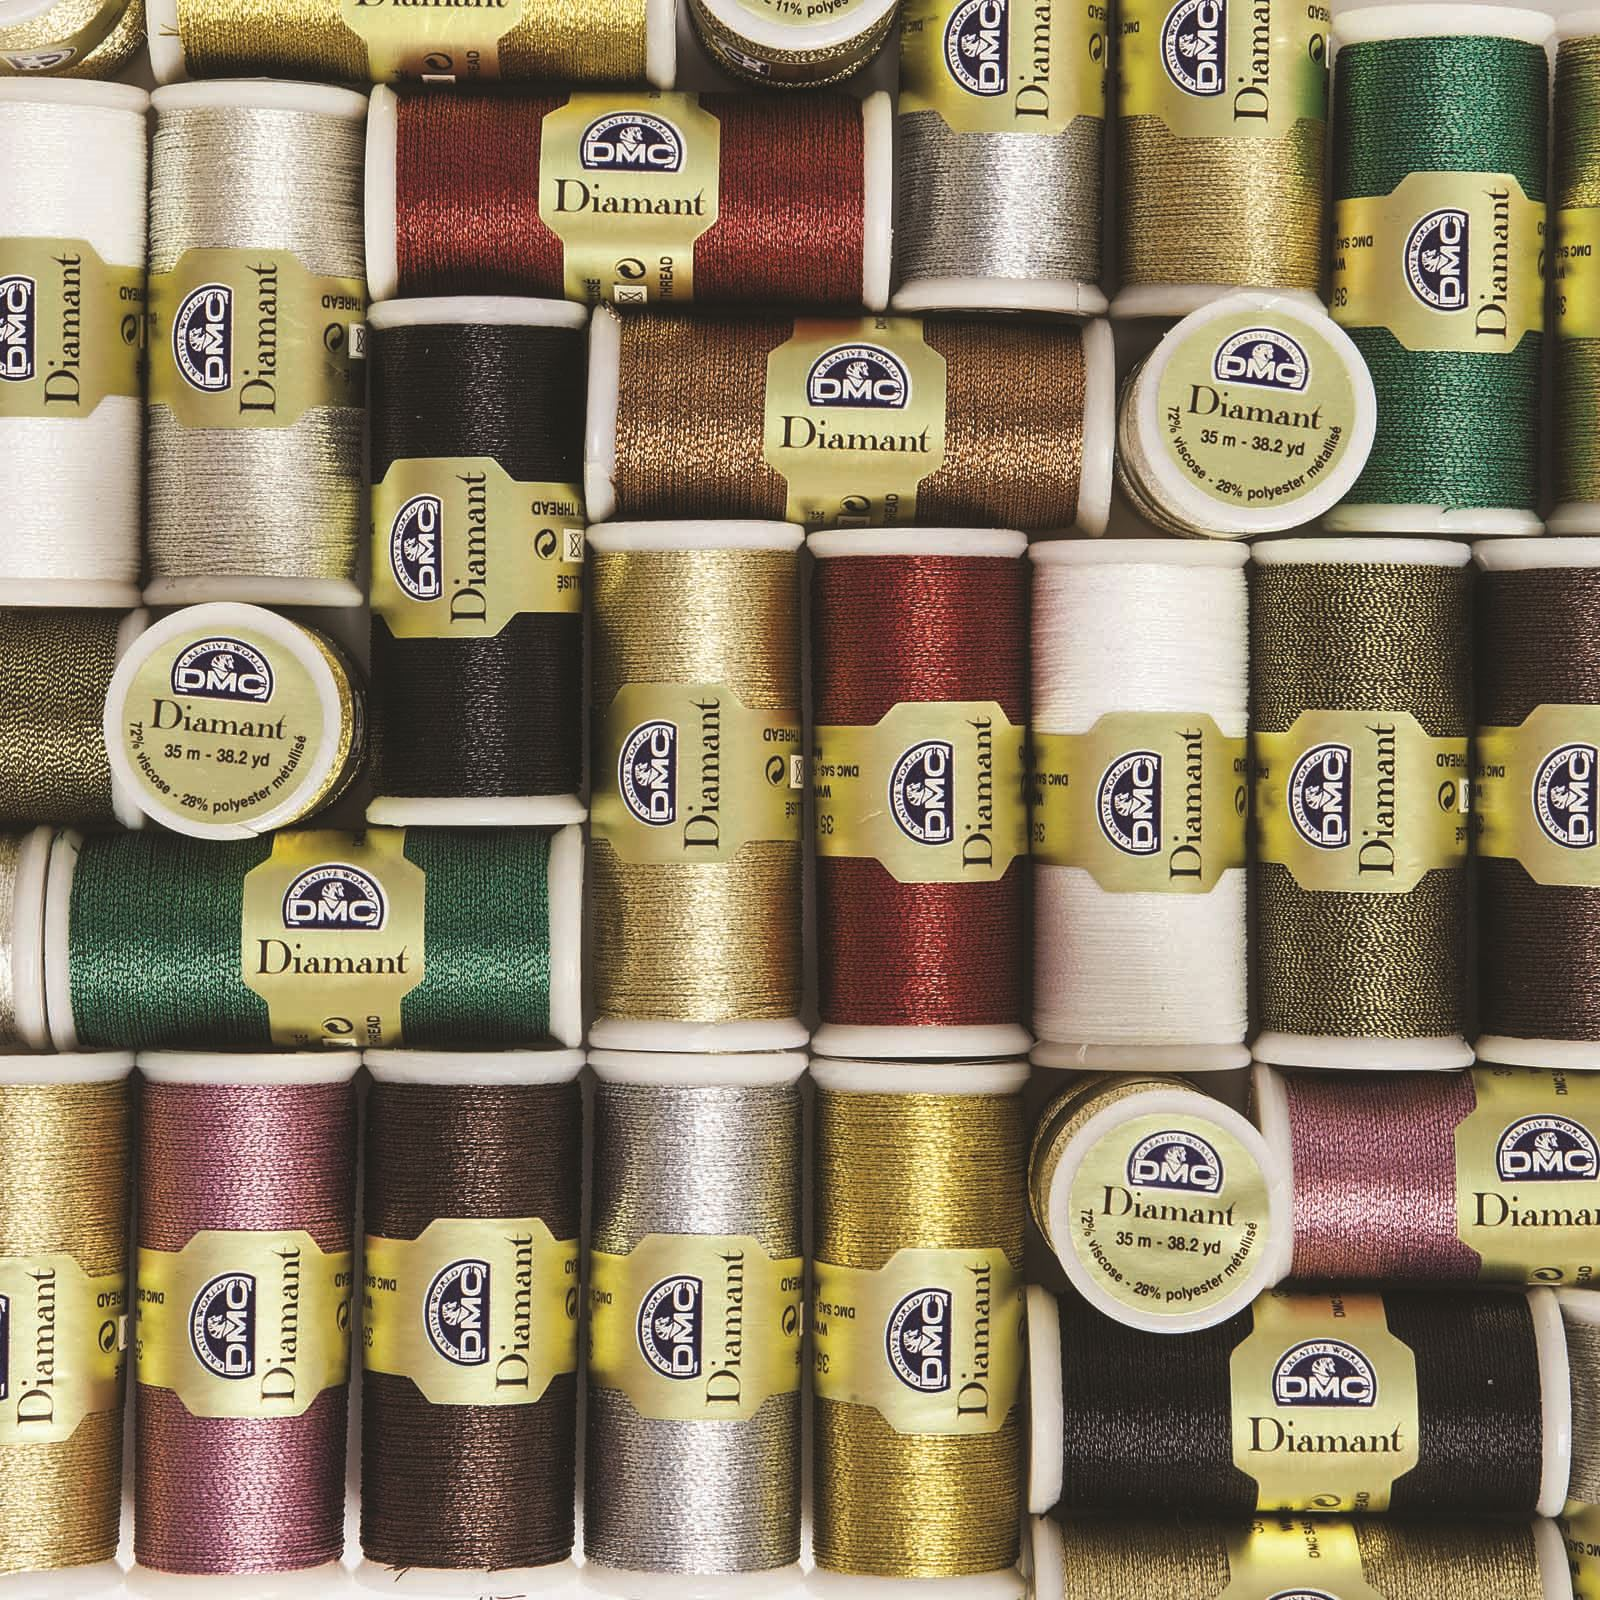 DMC-Diamant-Metallic-Embroidery-Thread-35m-Spool-Cross-Stitch thumbnail 31